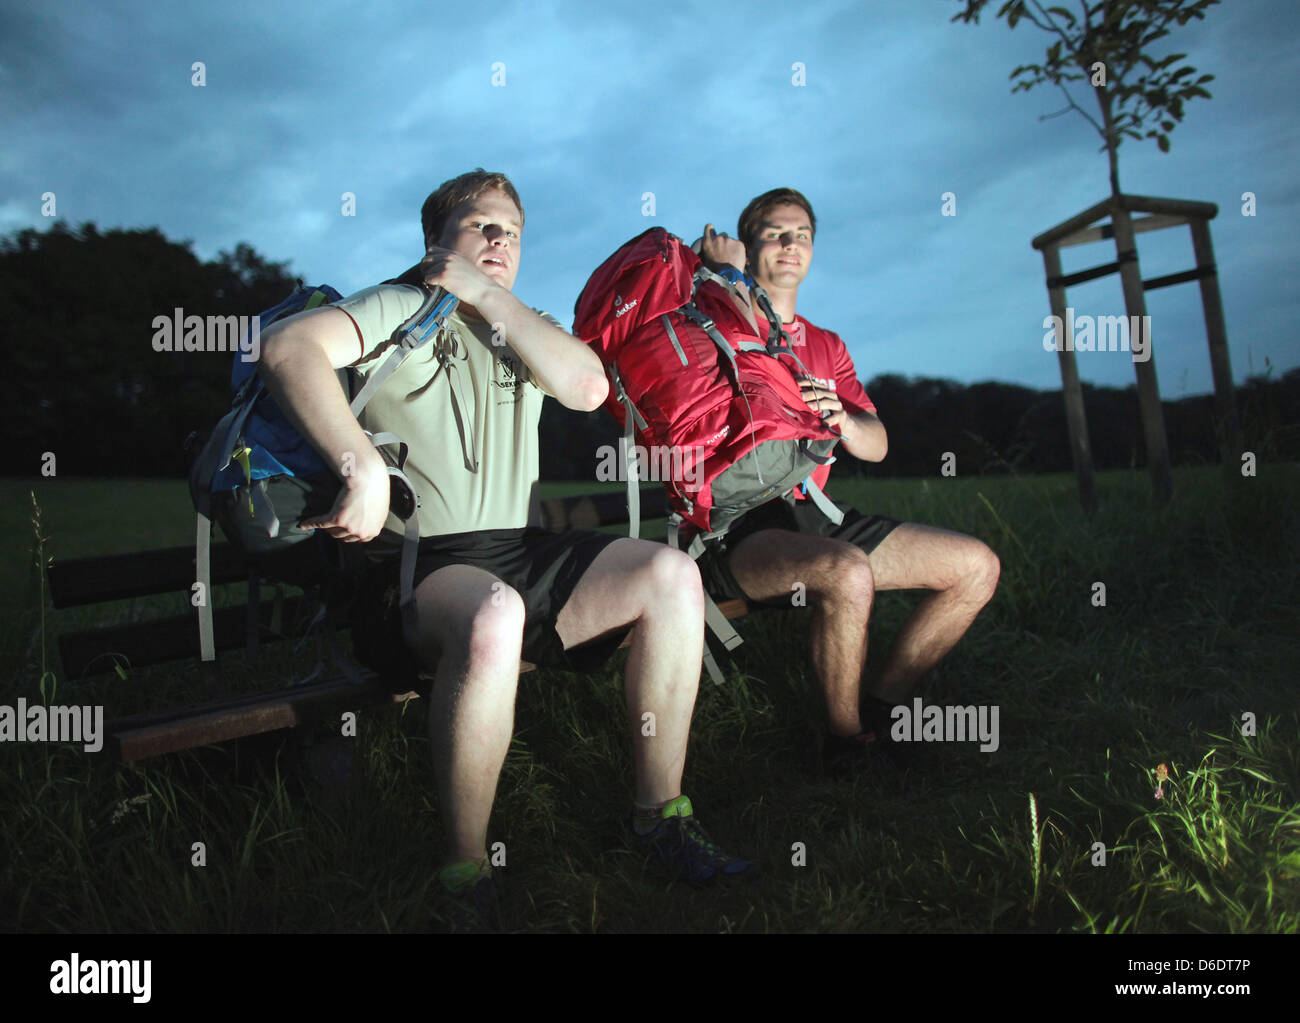 Extreme hicker Dennis Bettin(L)and friend Marco Storsberg put their backpacks on in Wermelskirchen,Germany, - Stock Image